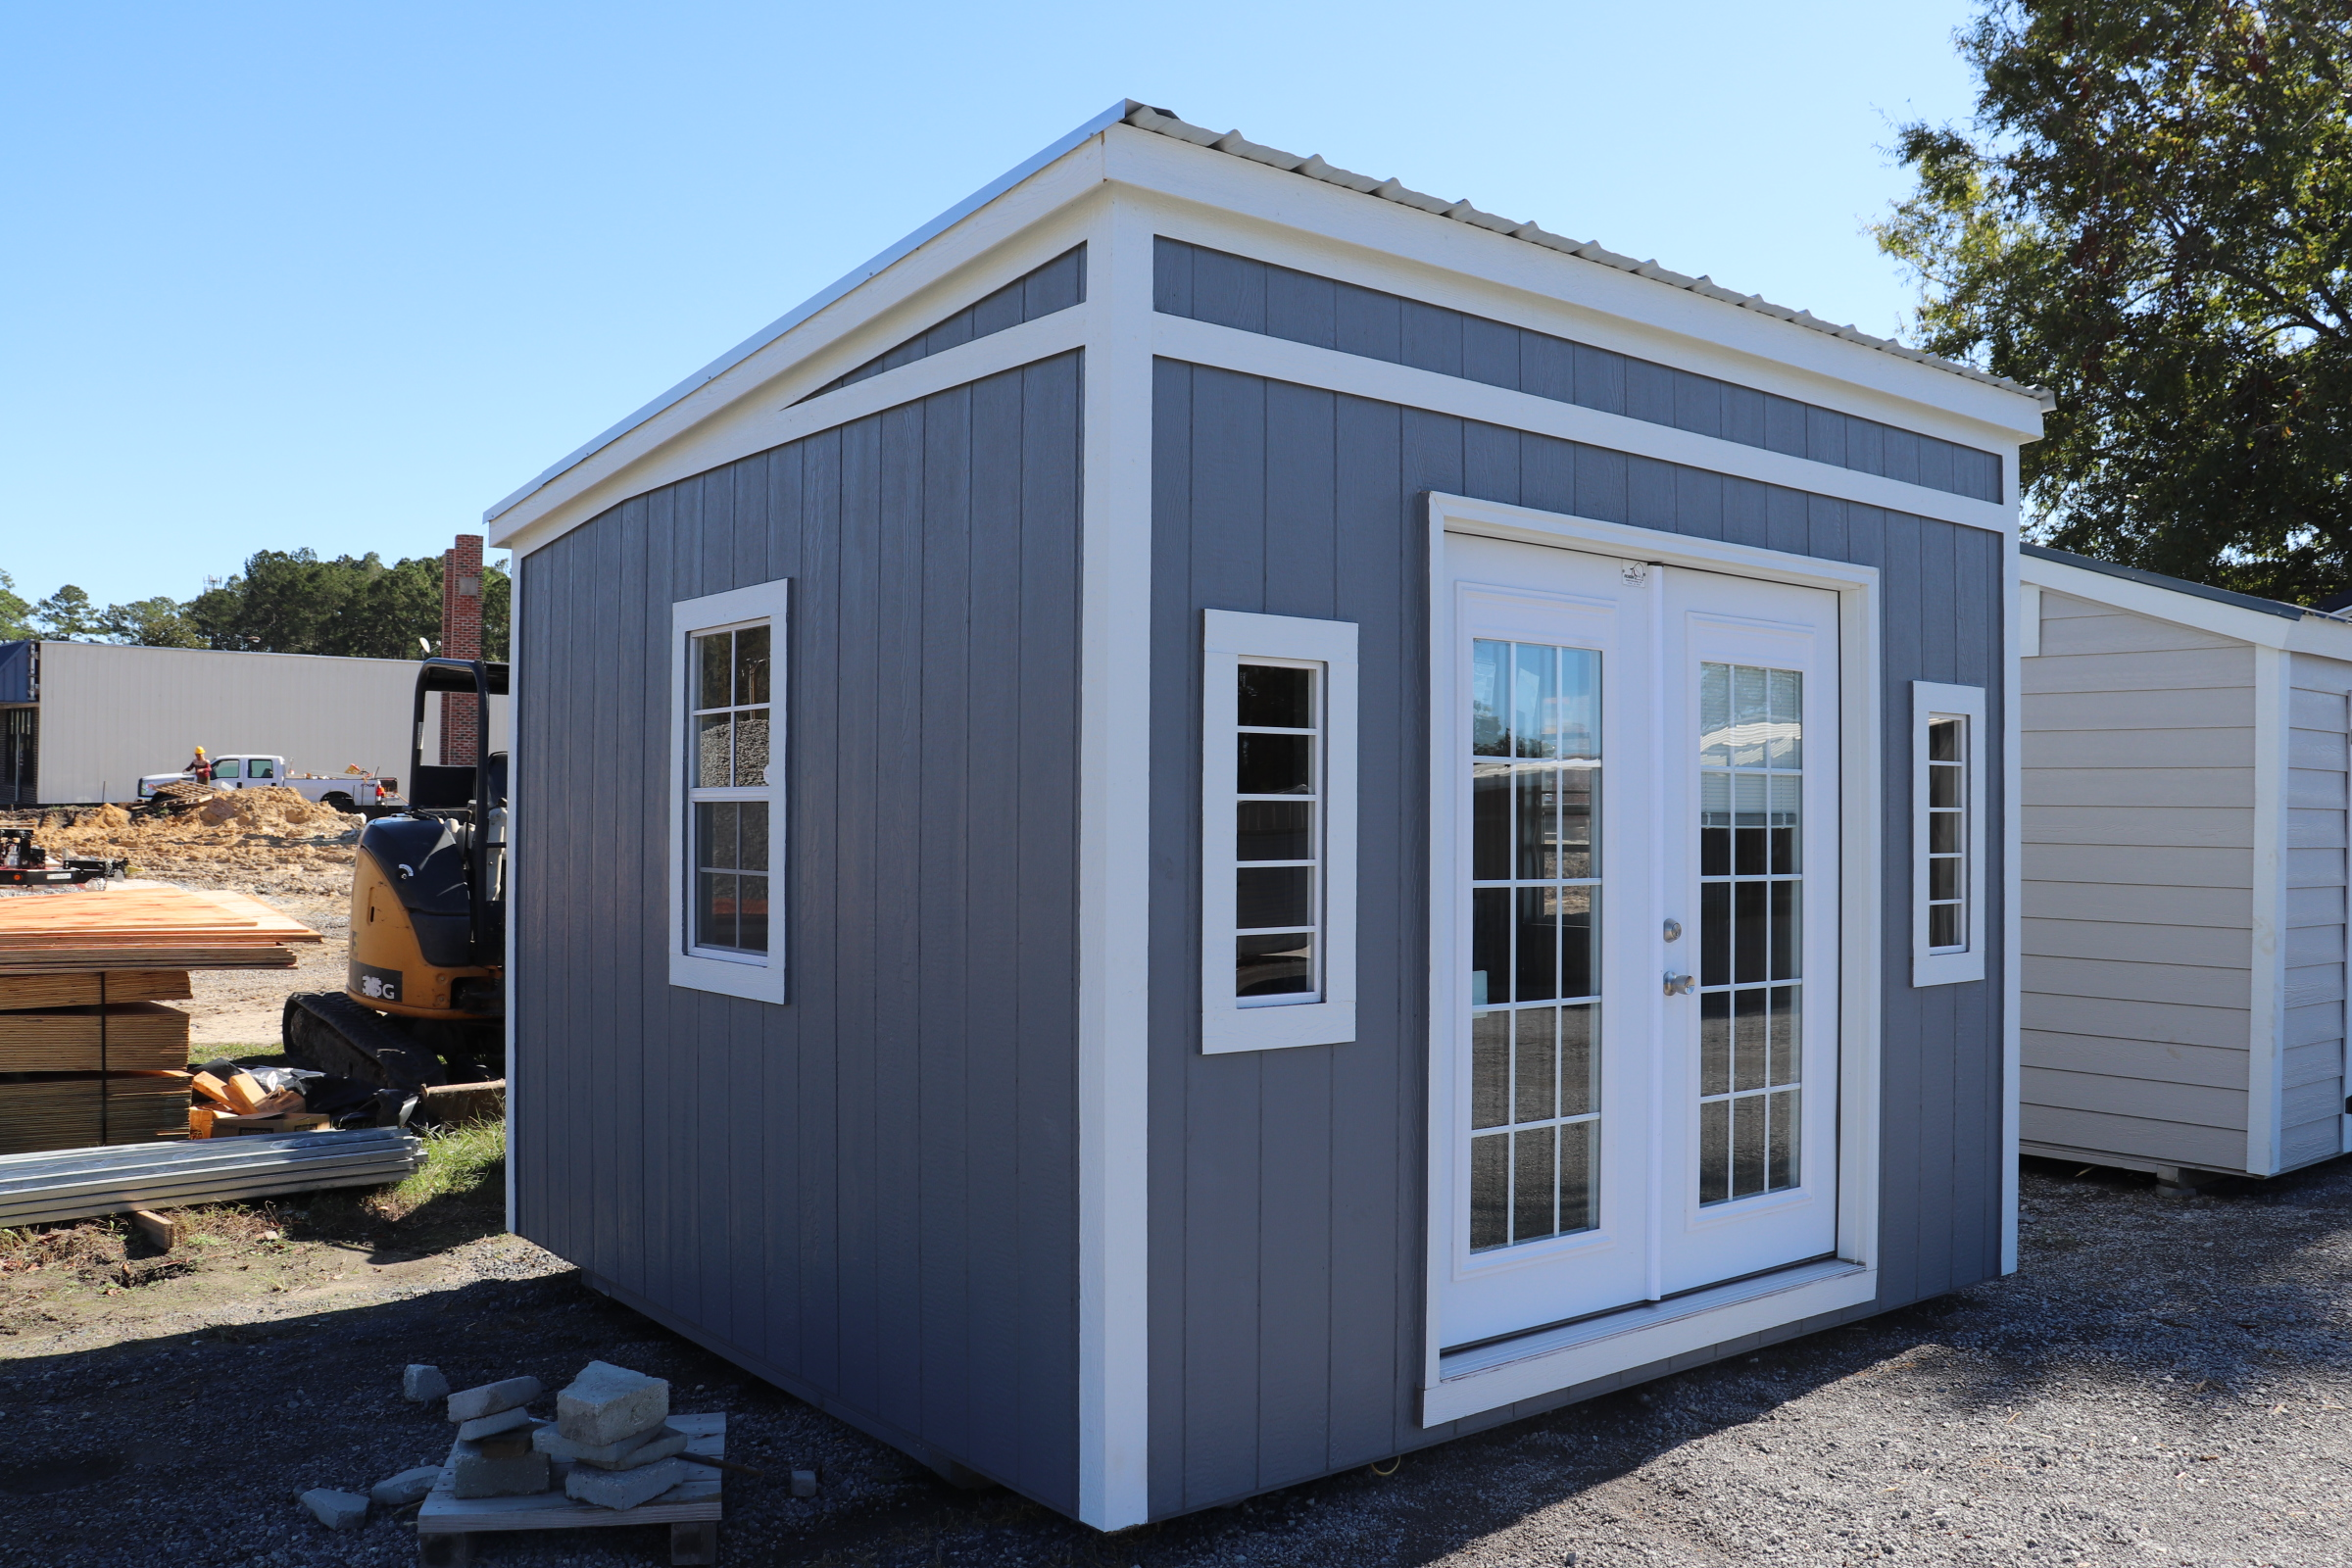 Myrtle 33 x 33 One Slope Style - She Shed